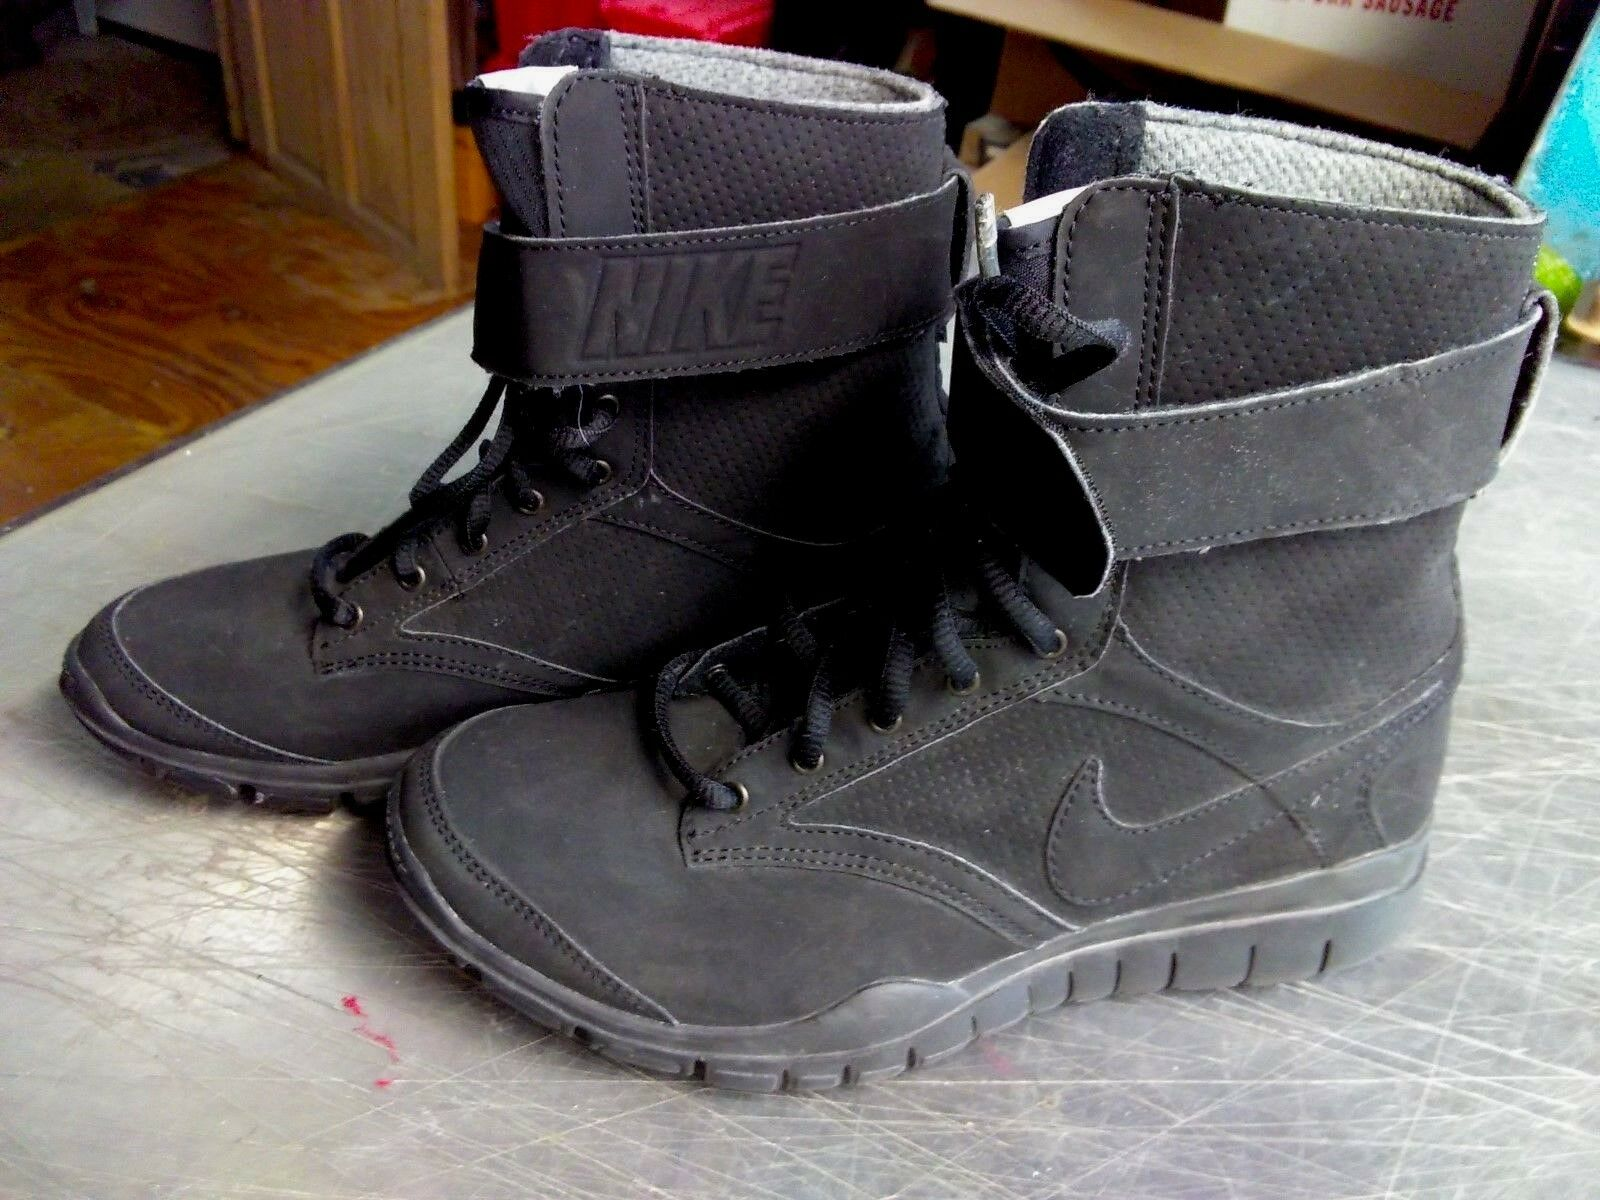 Nike Training Combat TR High High High 535852-001 Black Women's Girl's Boots Size 6.5 M d104ce